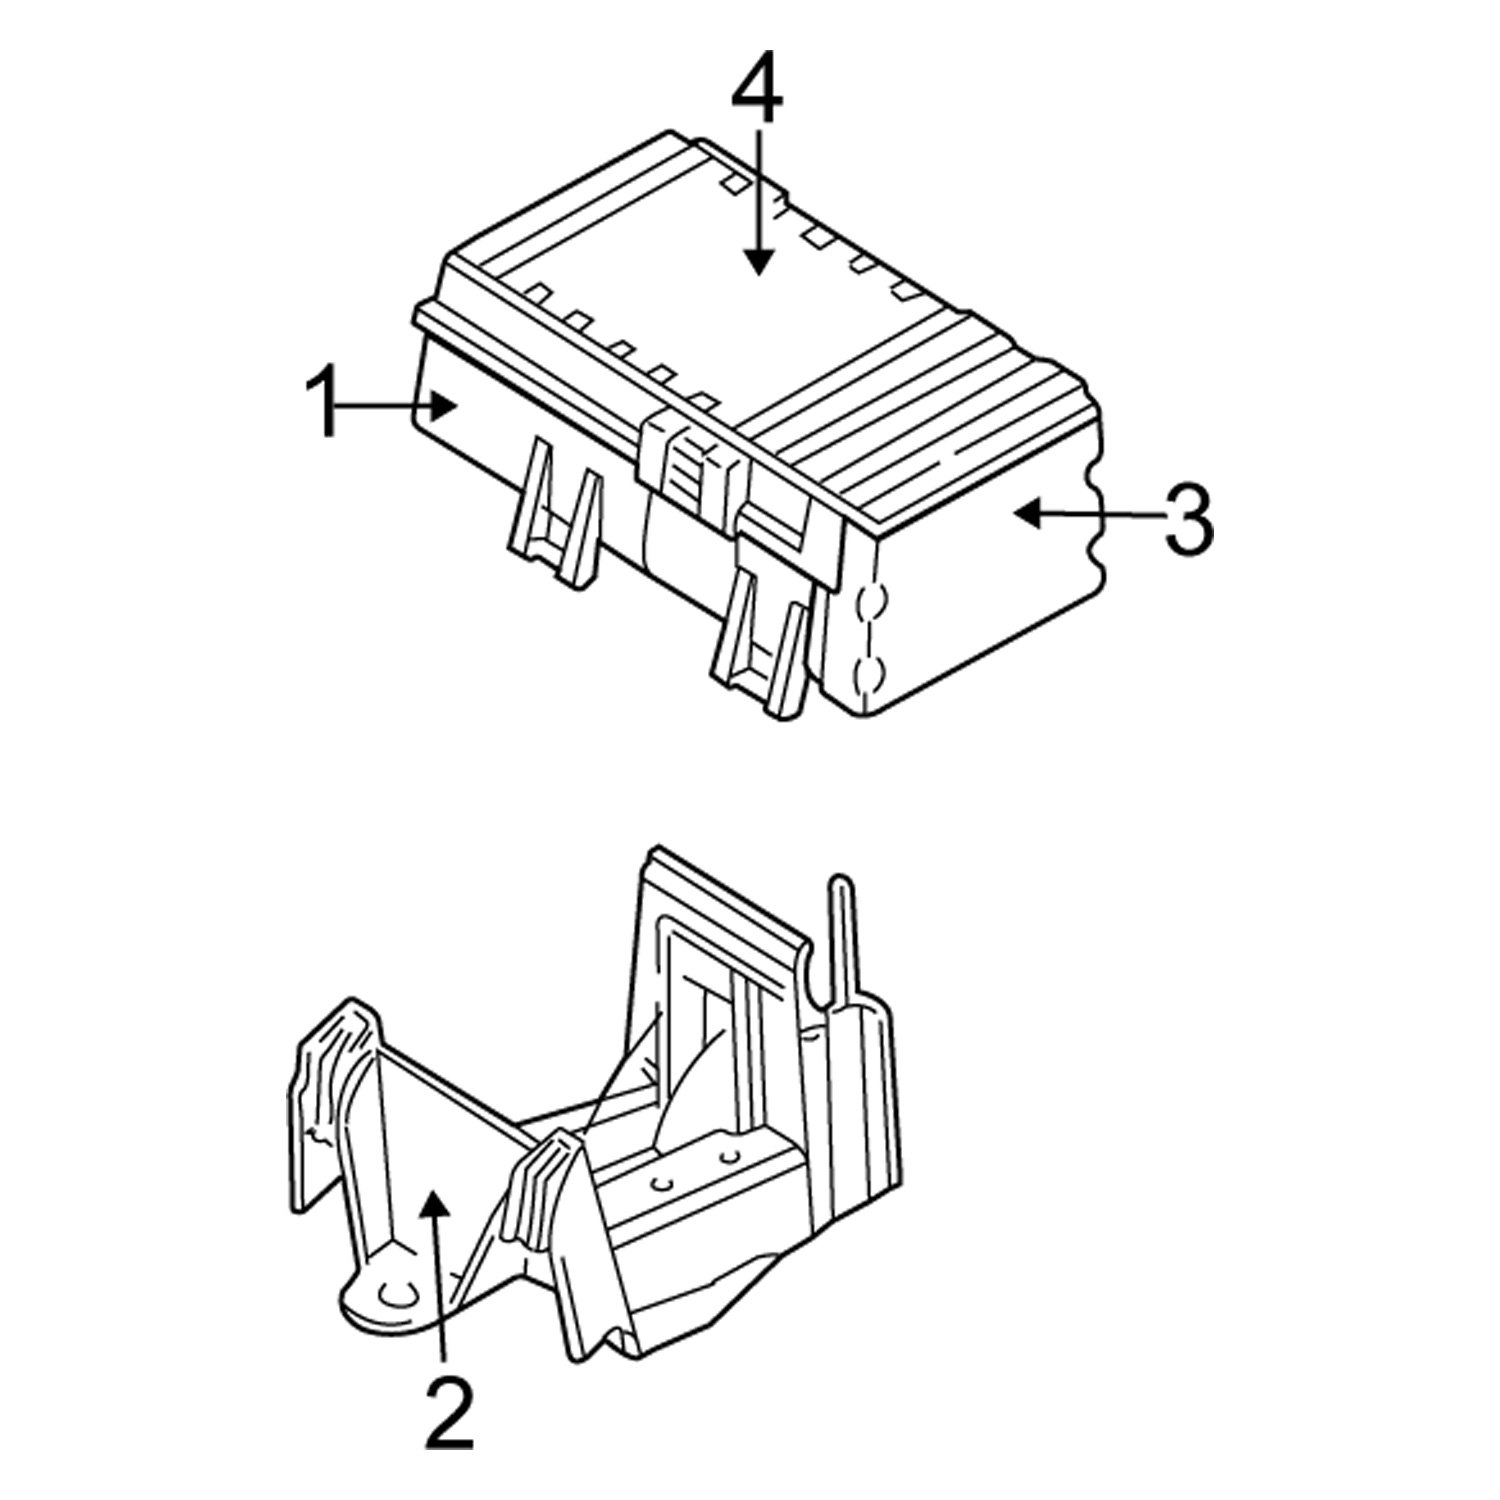 [DIAGRAM] Chrysler Town And Country Interior Light Fuse